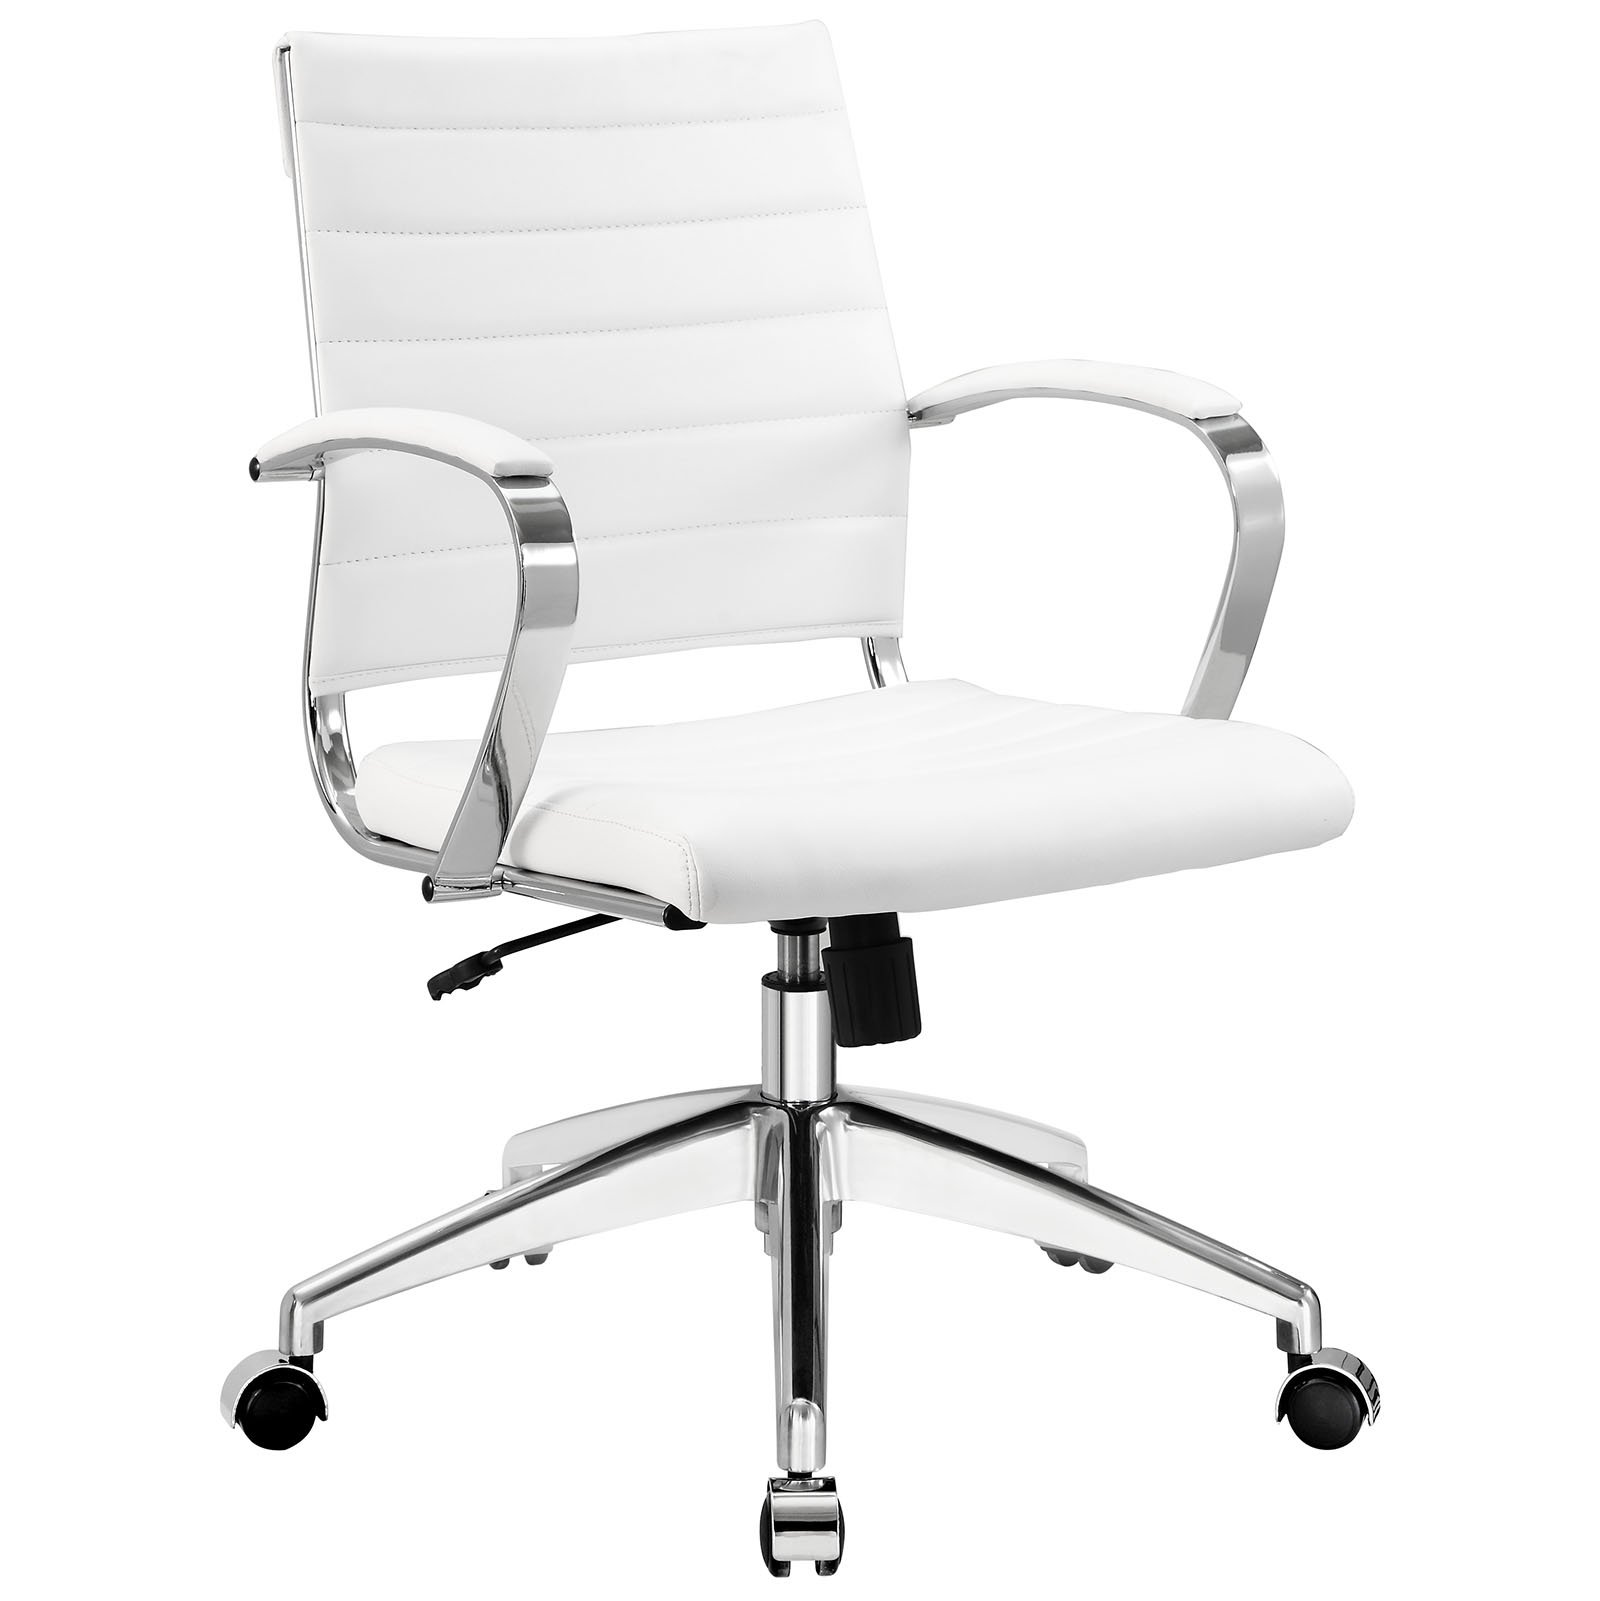 Modway Jive Ribbed Mid Back Executive Office Chair With Arms In White by Modway